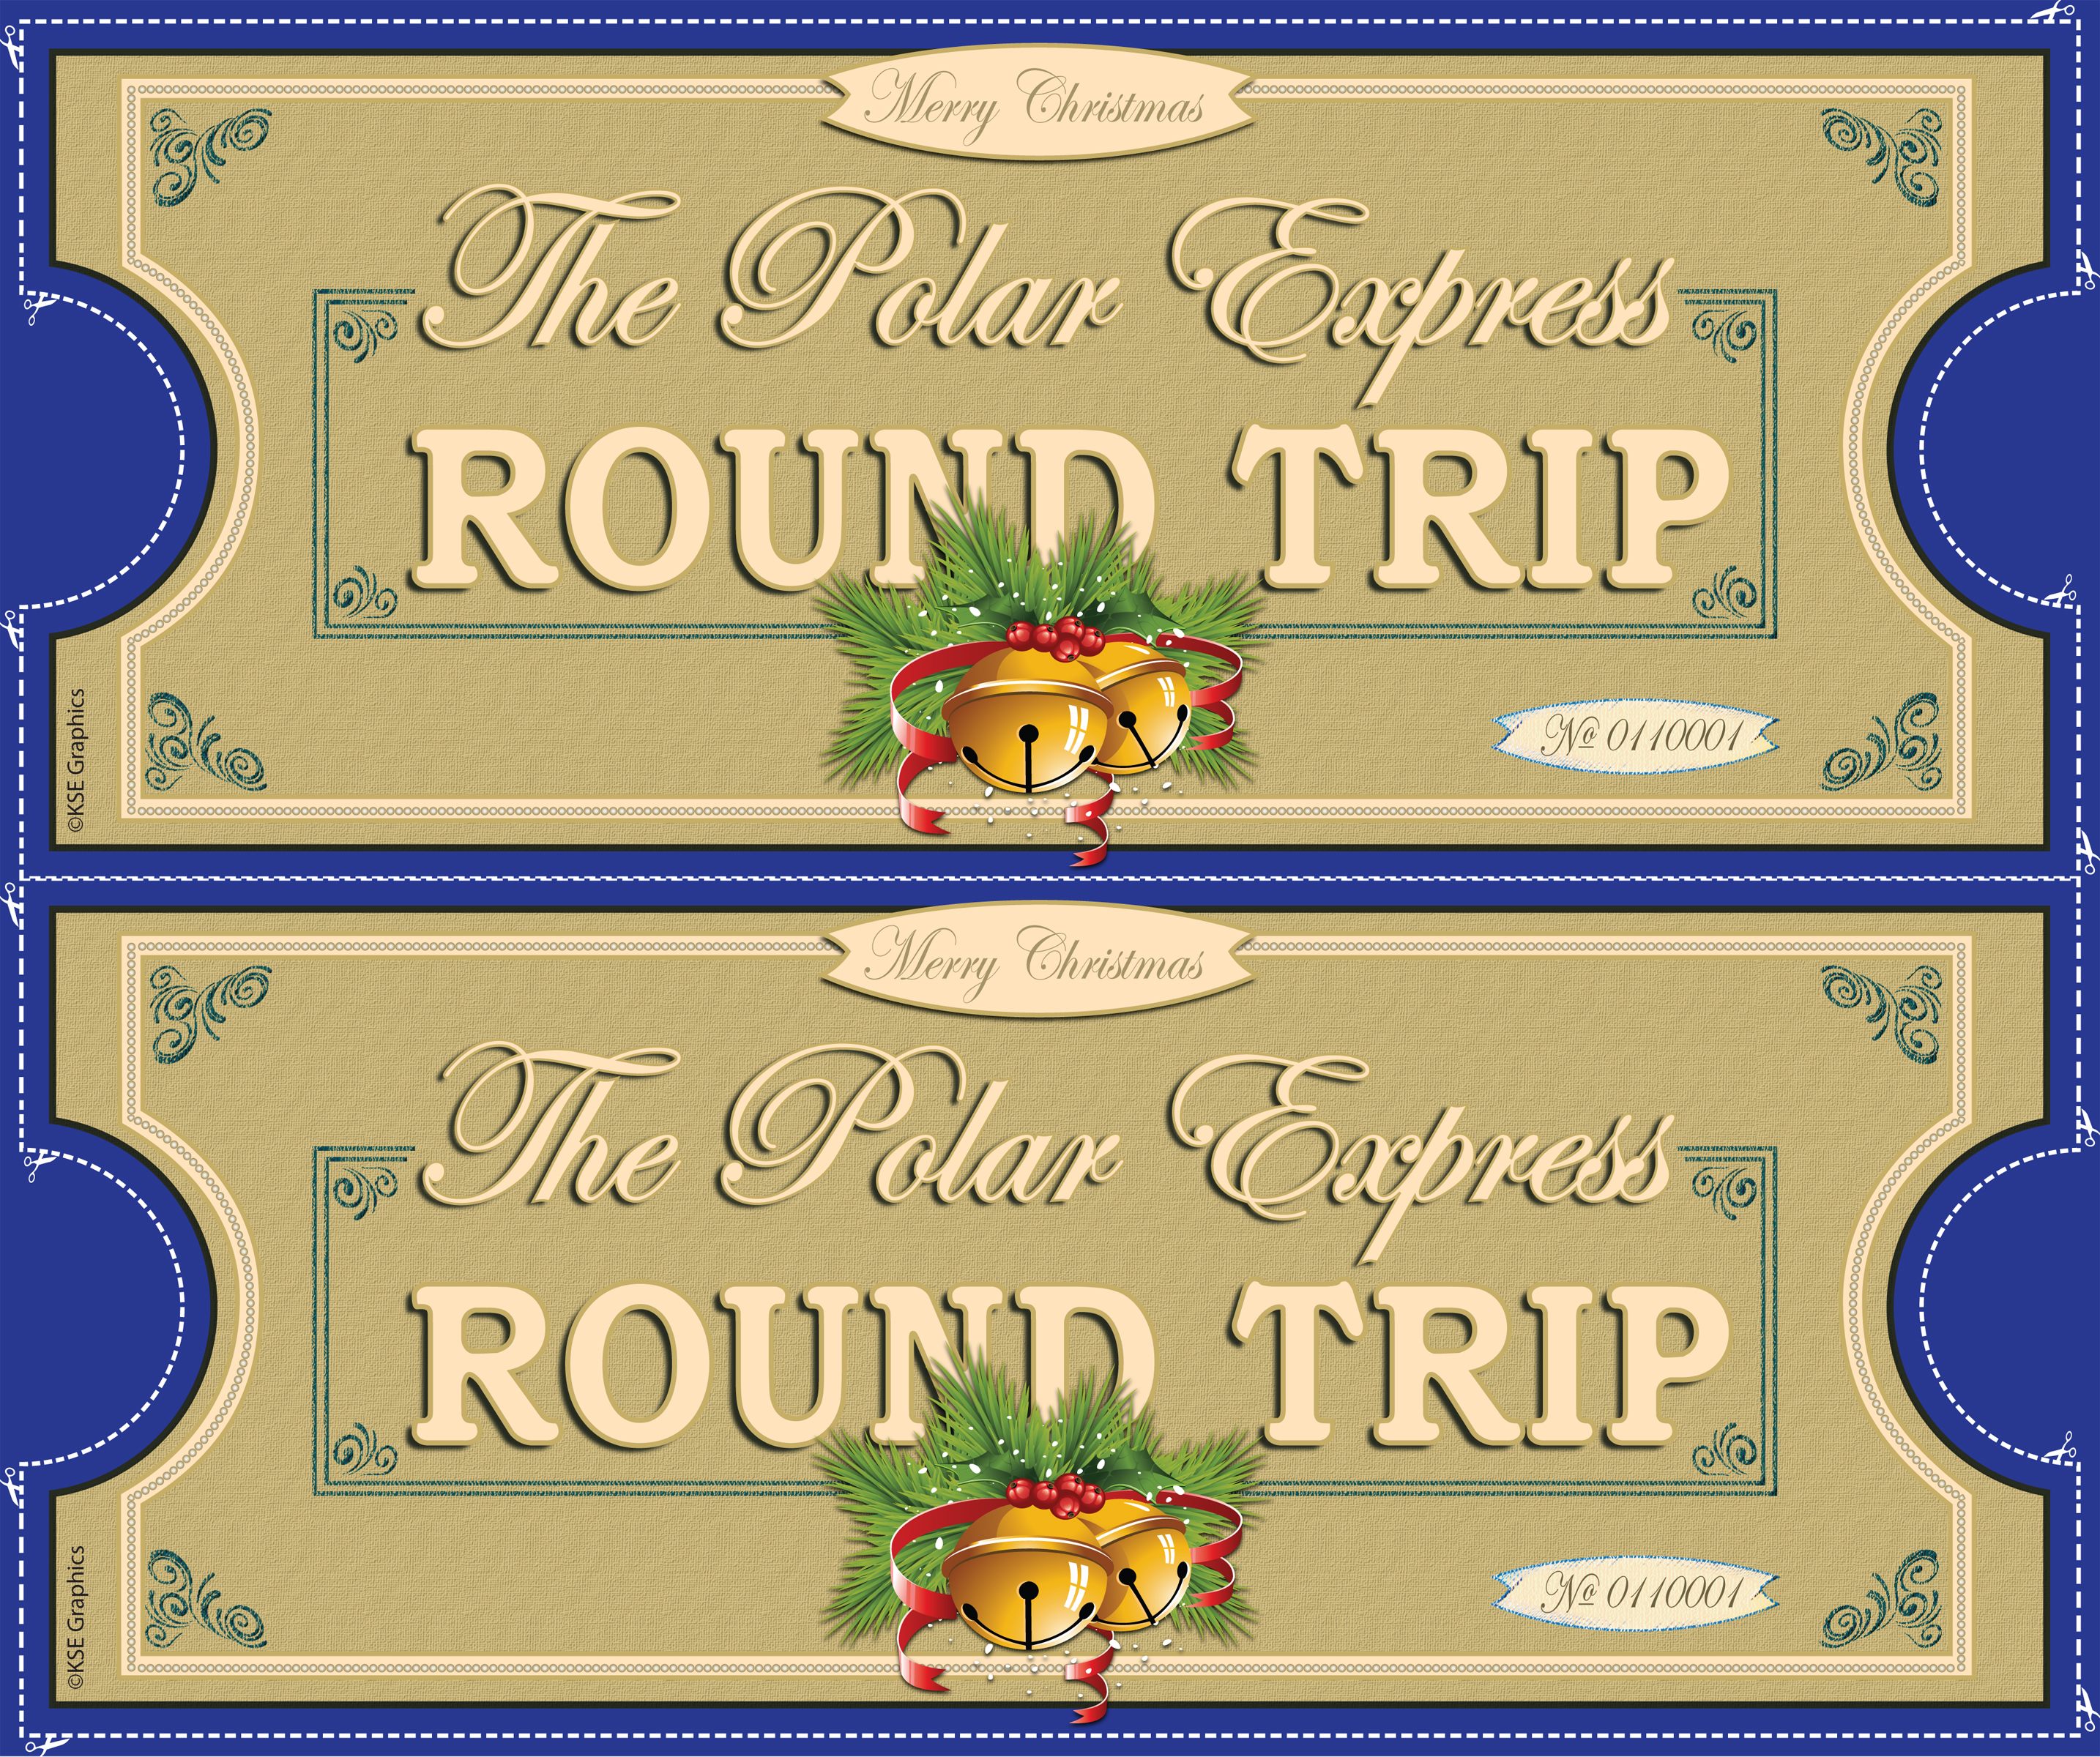 Polar Express tickets FRONT 2up BLUE | Flickr - Photo Sharing!